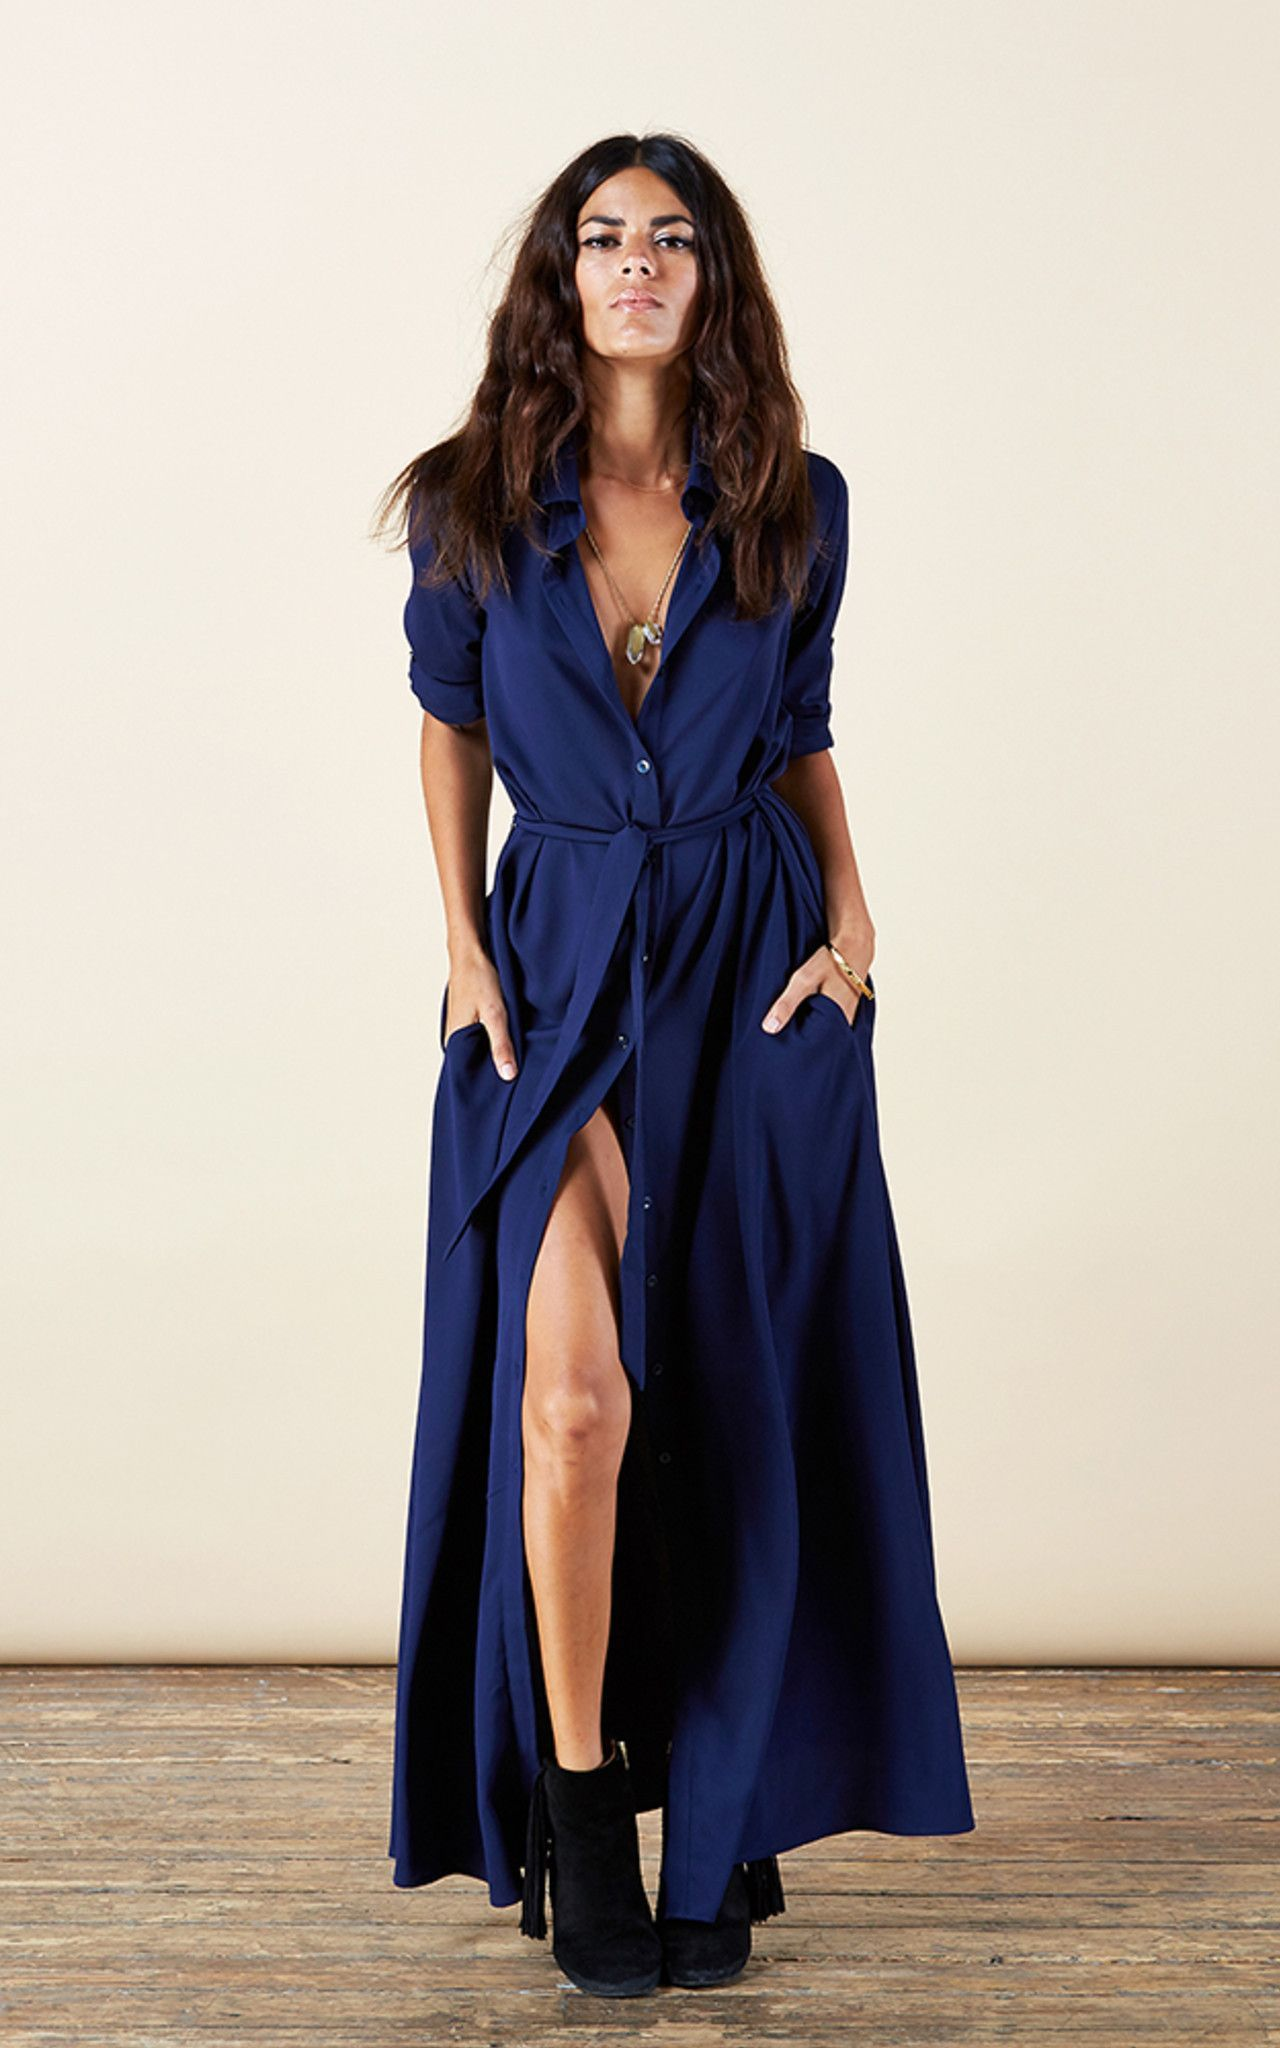 638311eab73 Vantage Point Maxi Shirt Dress  2 colorways  in 2019